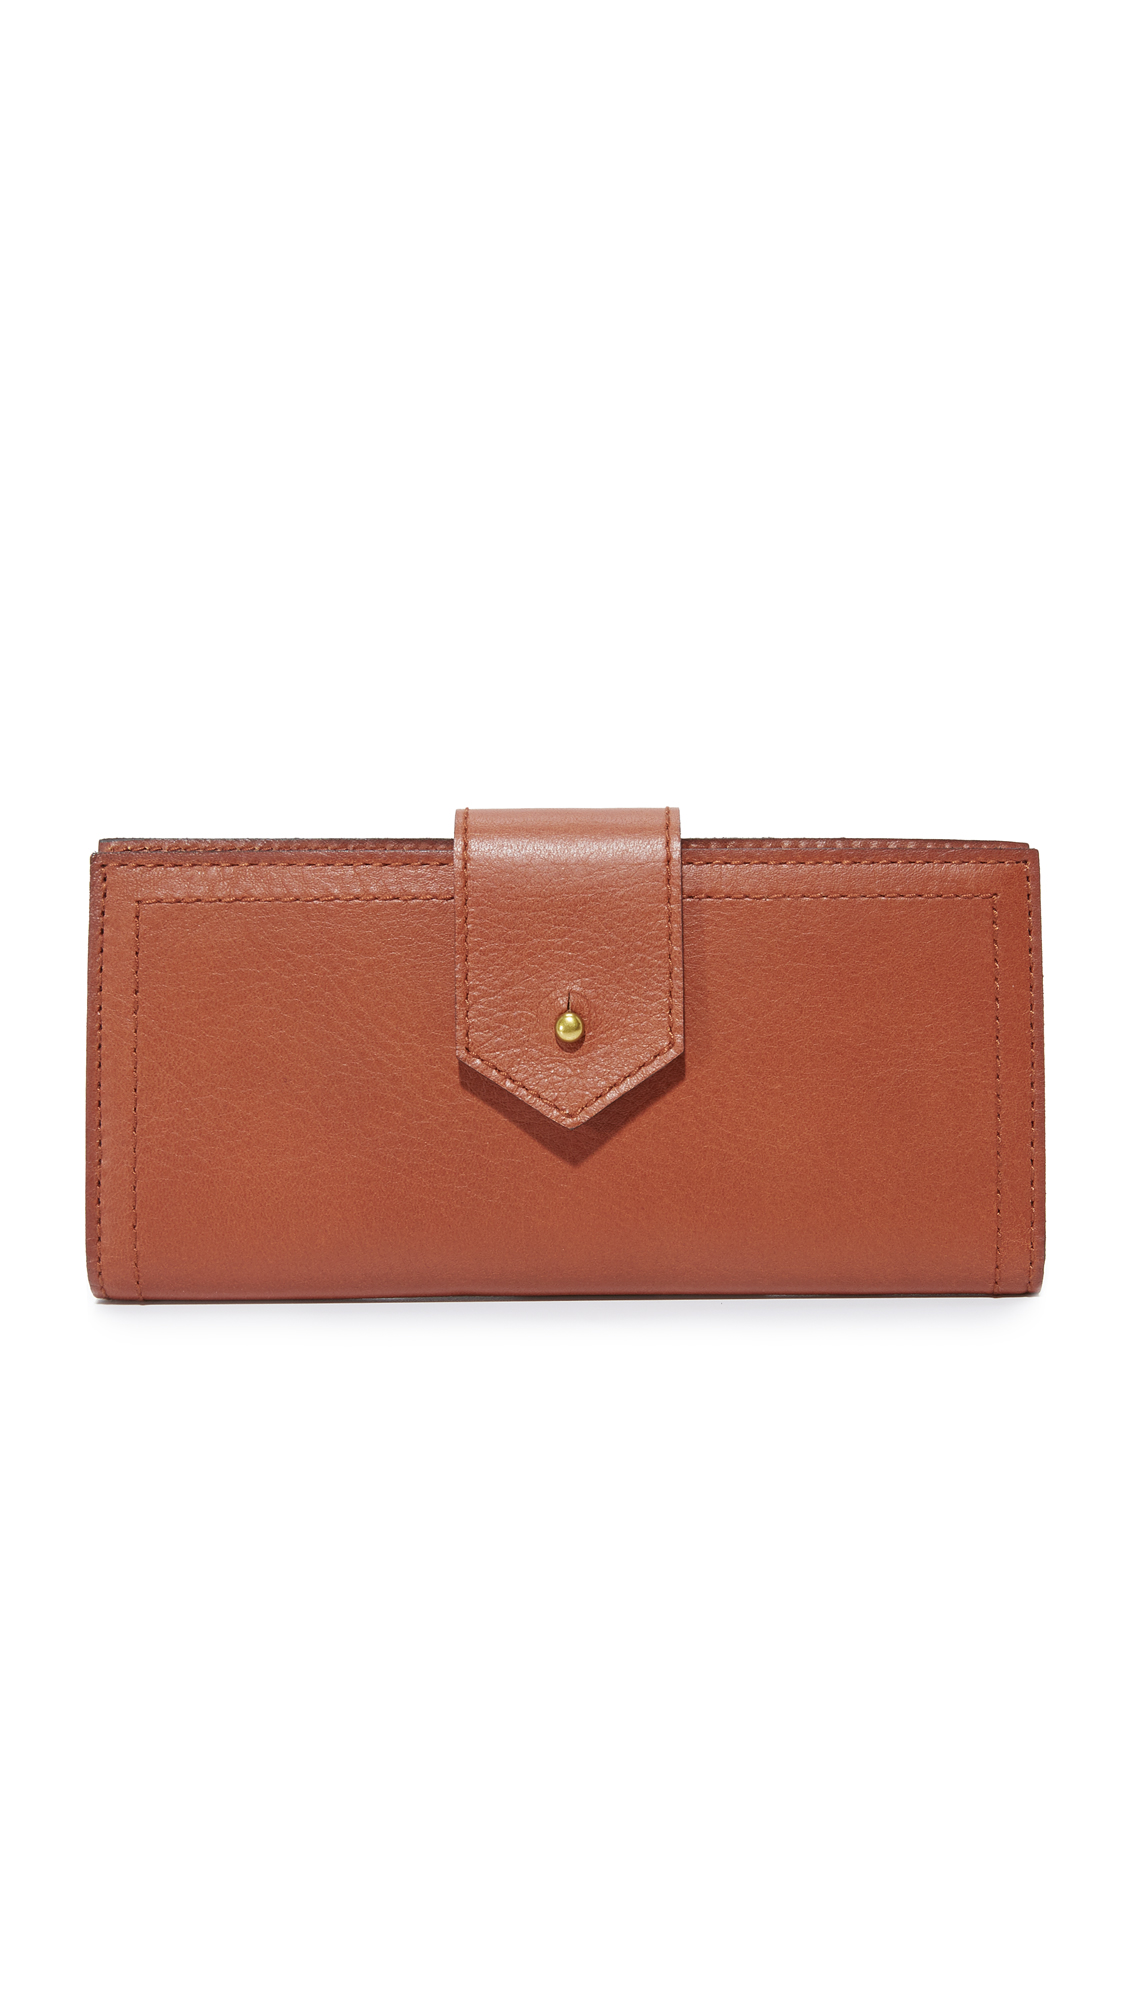 Madewell The Post Wallet - English Saddle